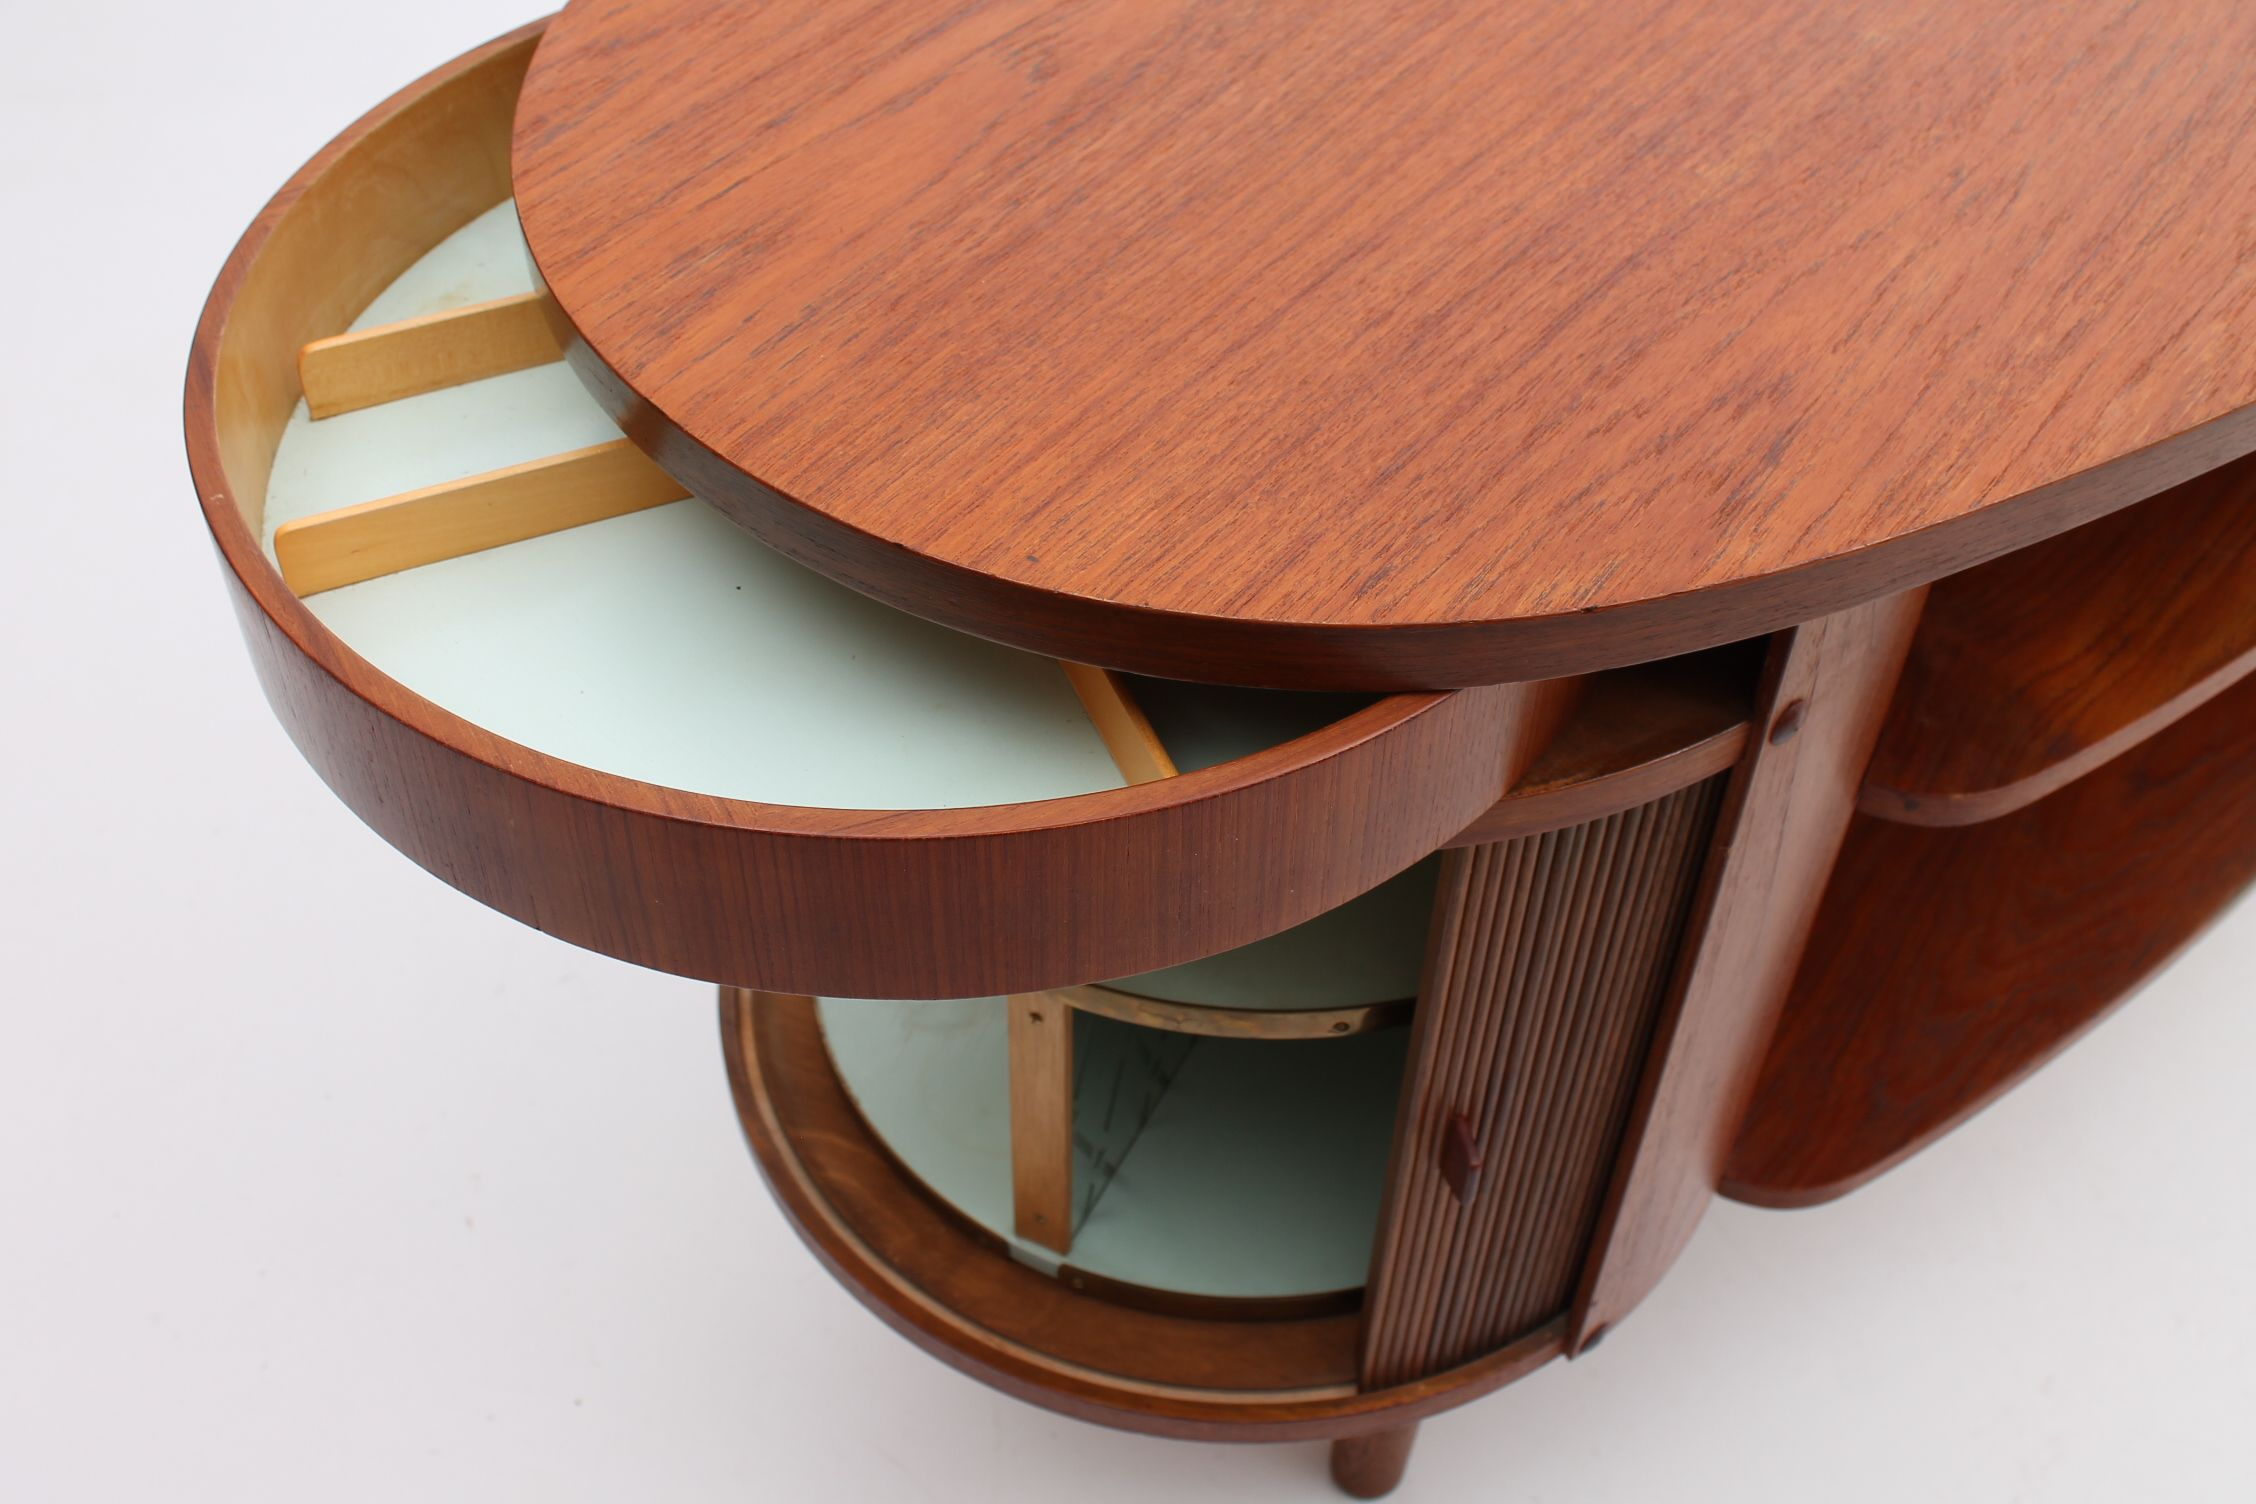 Detail from an organic shaped desk with roll front and spinning